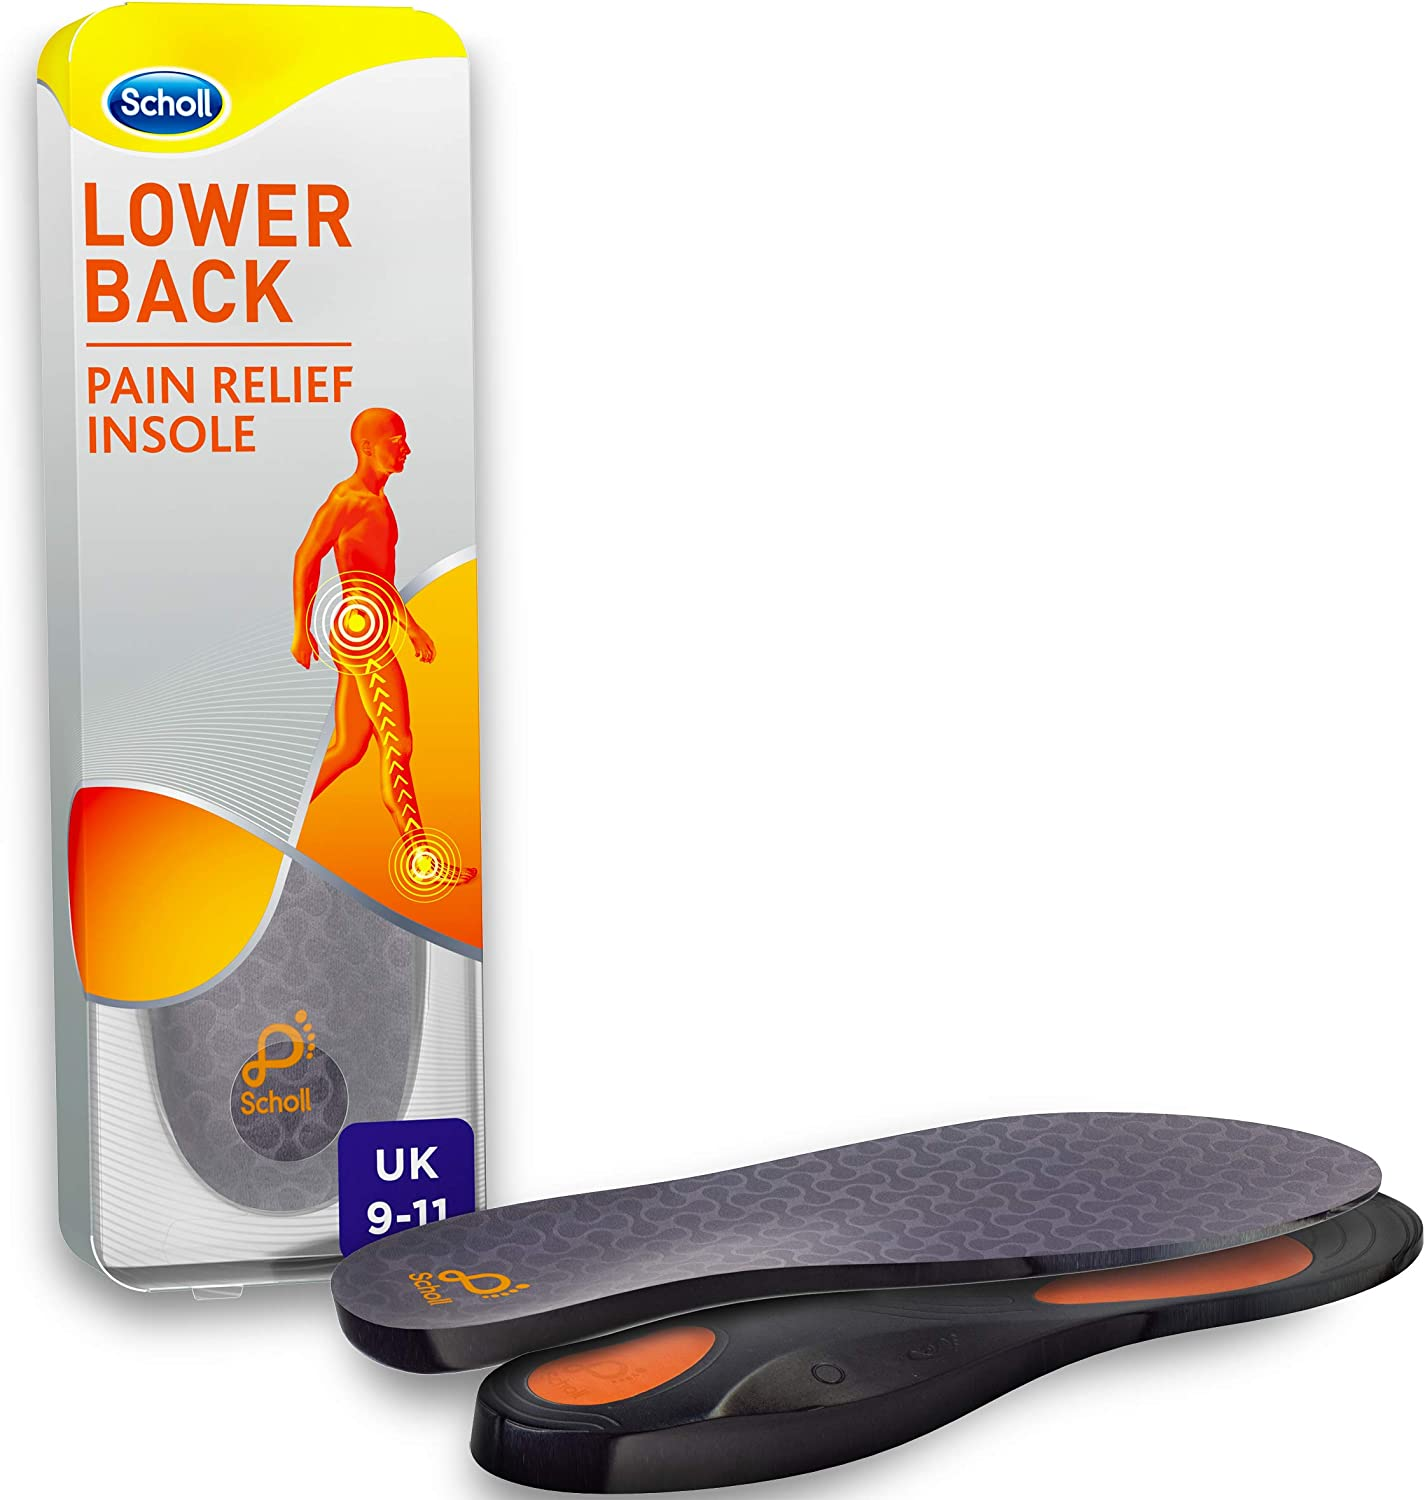 Scholl Orthotic Insole Lower Back Pain